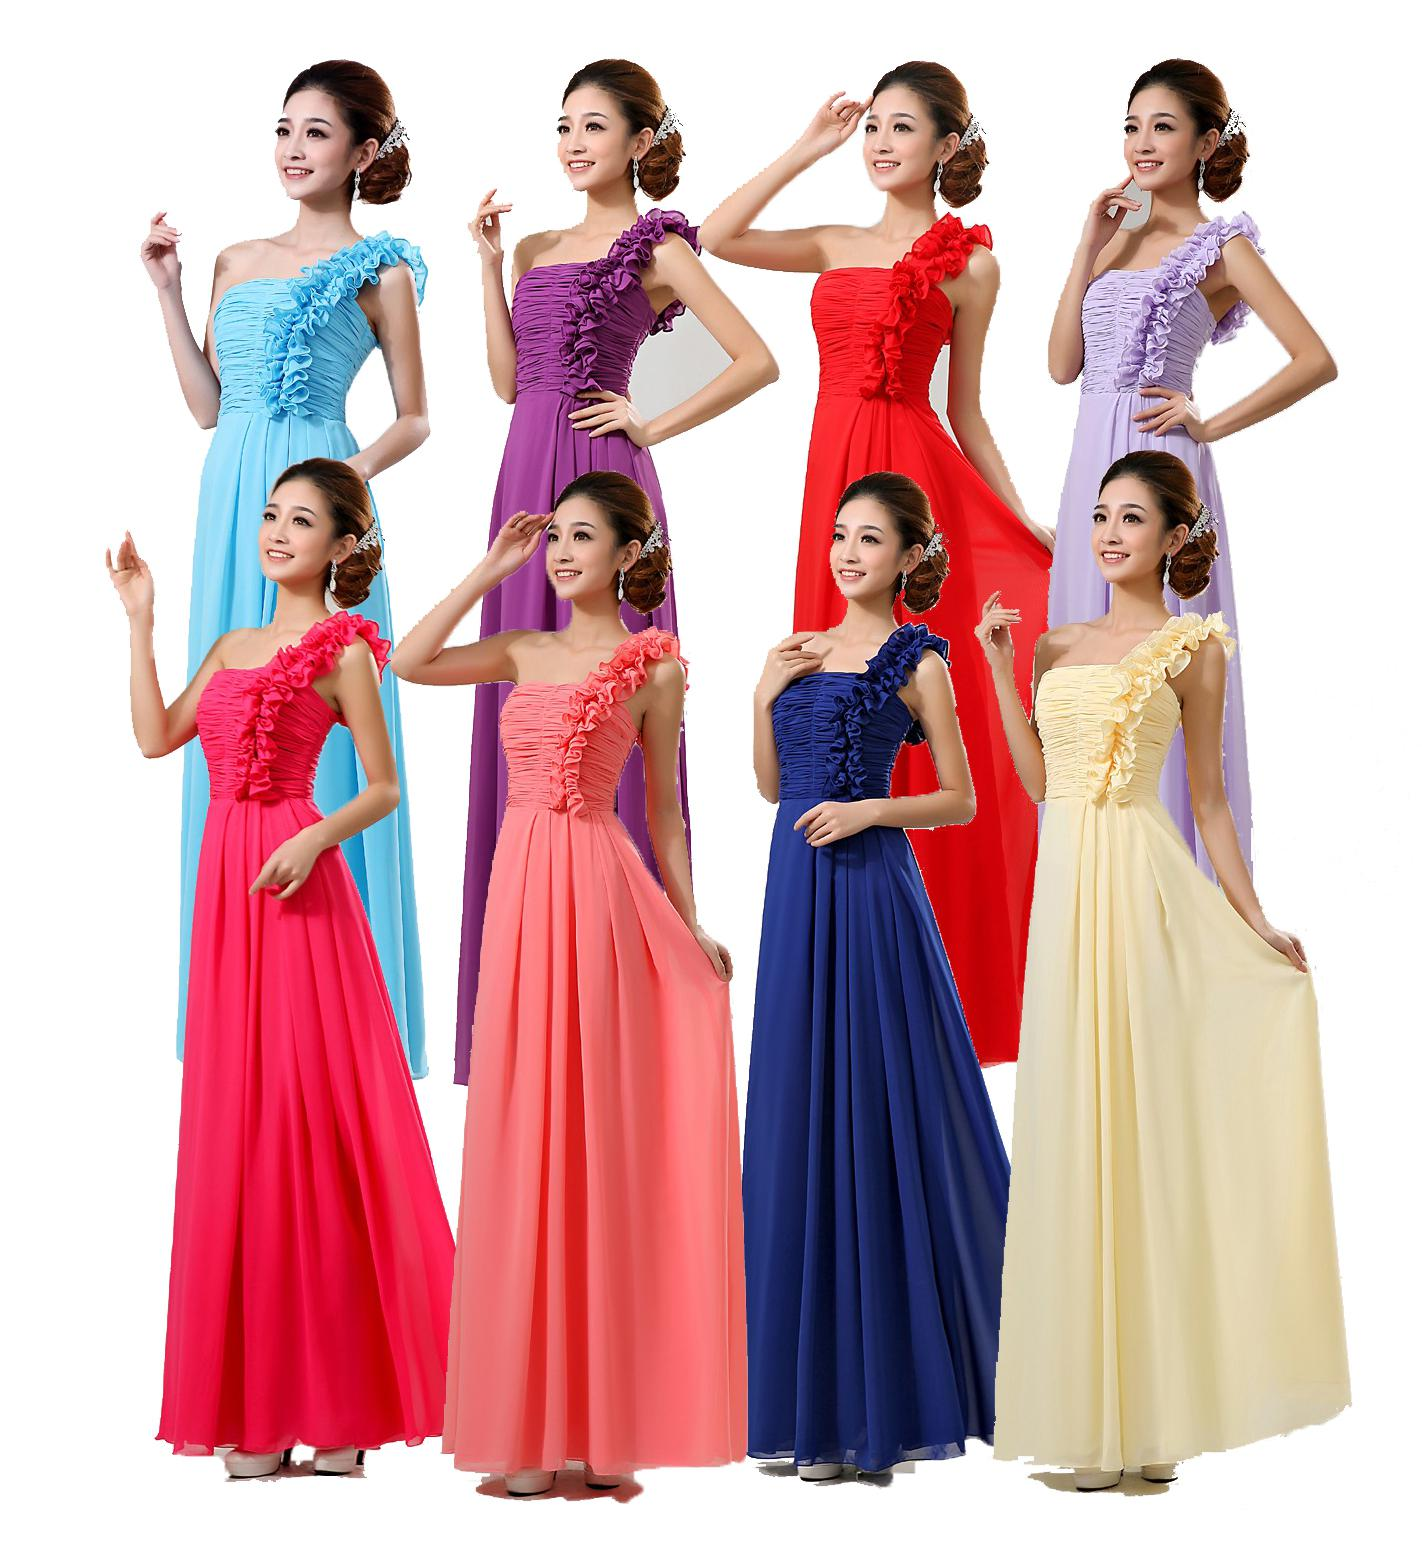 Bridesmaid chiffon one shoulder wedding dresses evening womens bridesmaid chiffon one shoulder wedding dresses evening womens long red blue purple yellow dress cocktail dress bridesmaid dress party dress online with ombrellifo Gallery